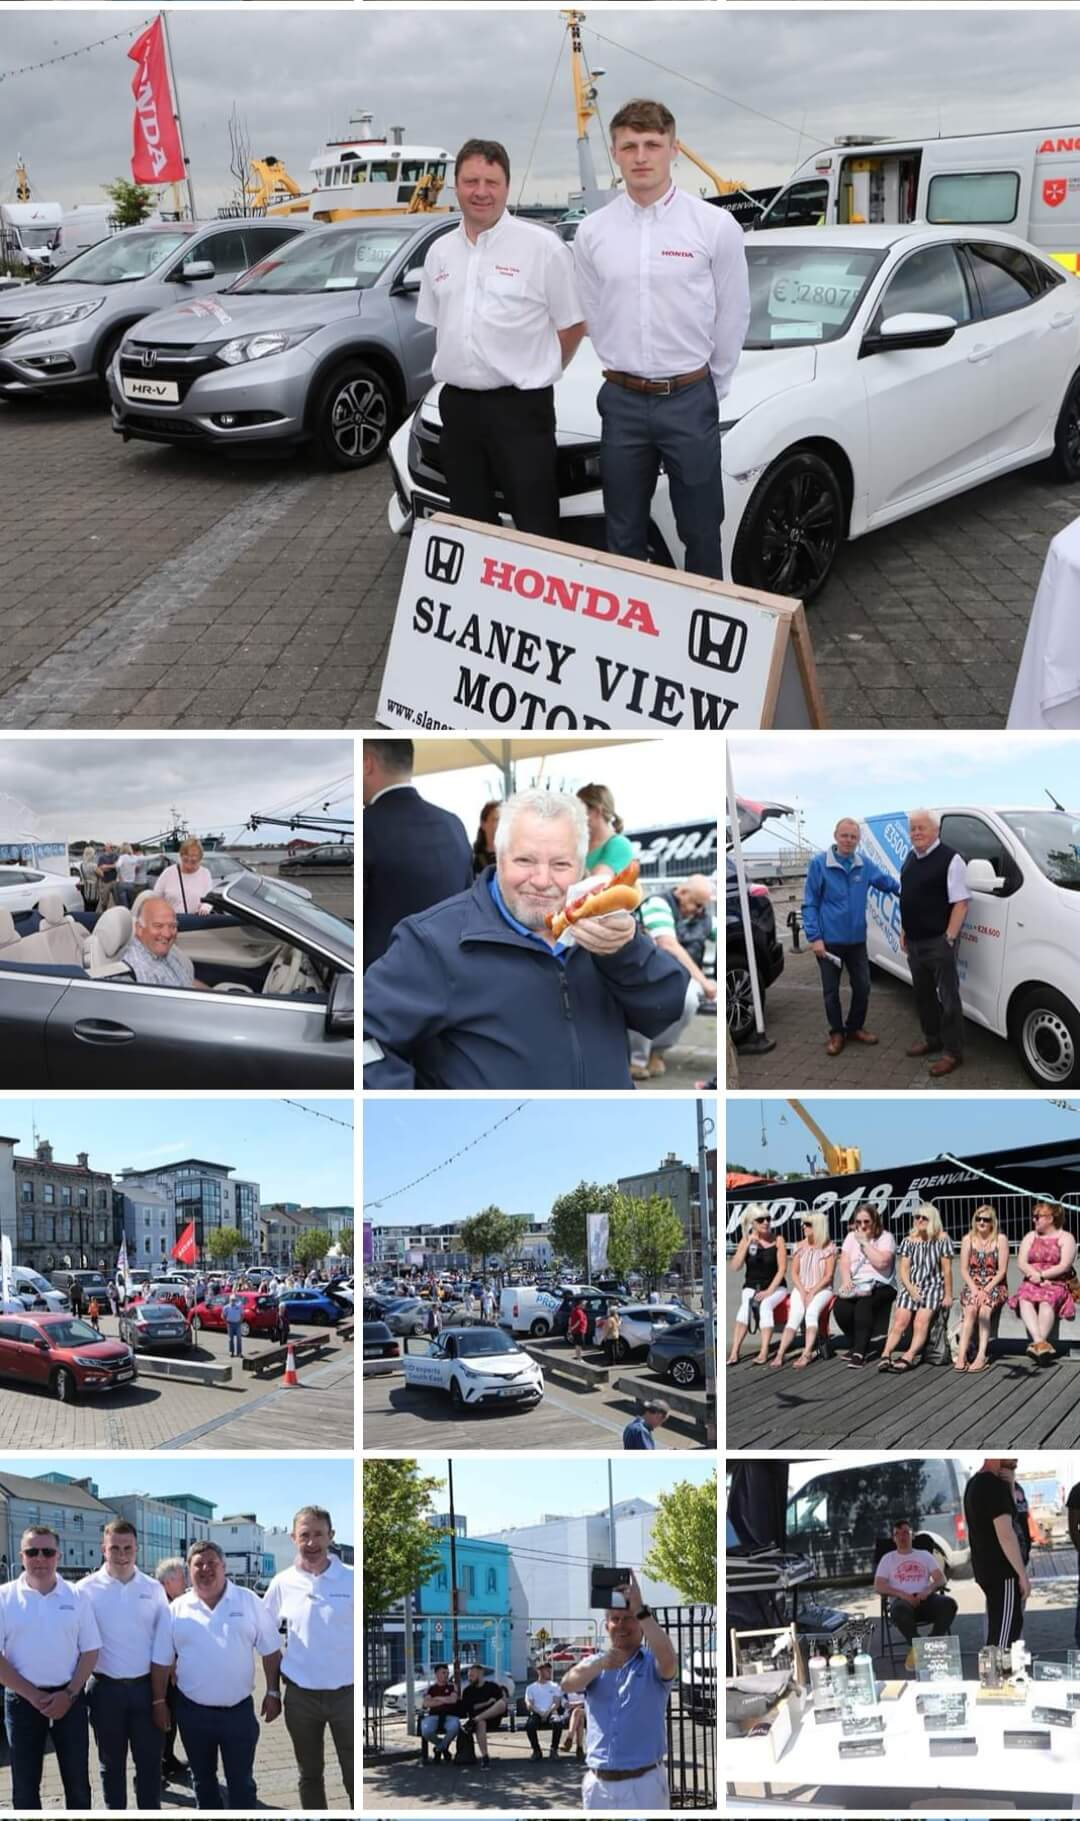 Slaney View Motors at Wexford Motor Show 2018